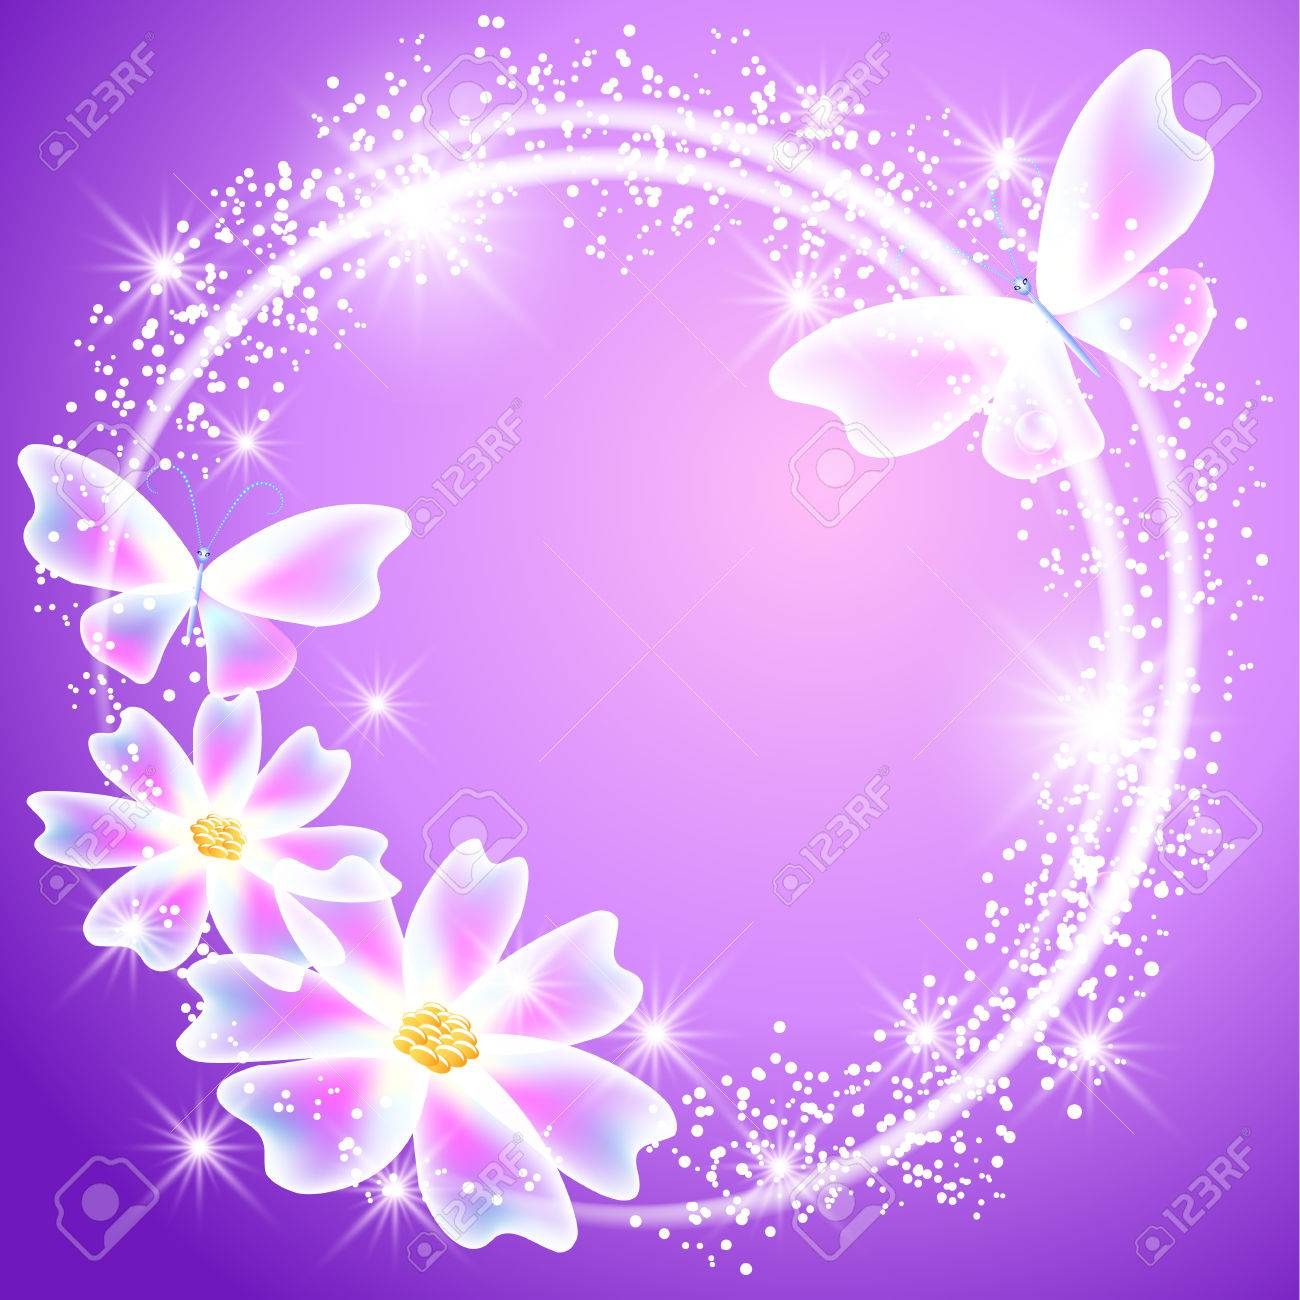 Sparkle Butterflies Background Images Glow Butterfly Sparkle Purple Abstract Neon Neon Butterfly Wallpaper And Desktop Background Hd Picture 88012